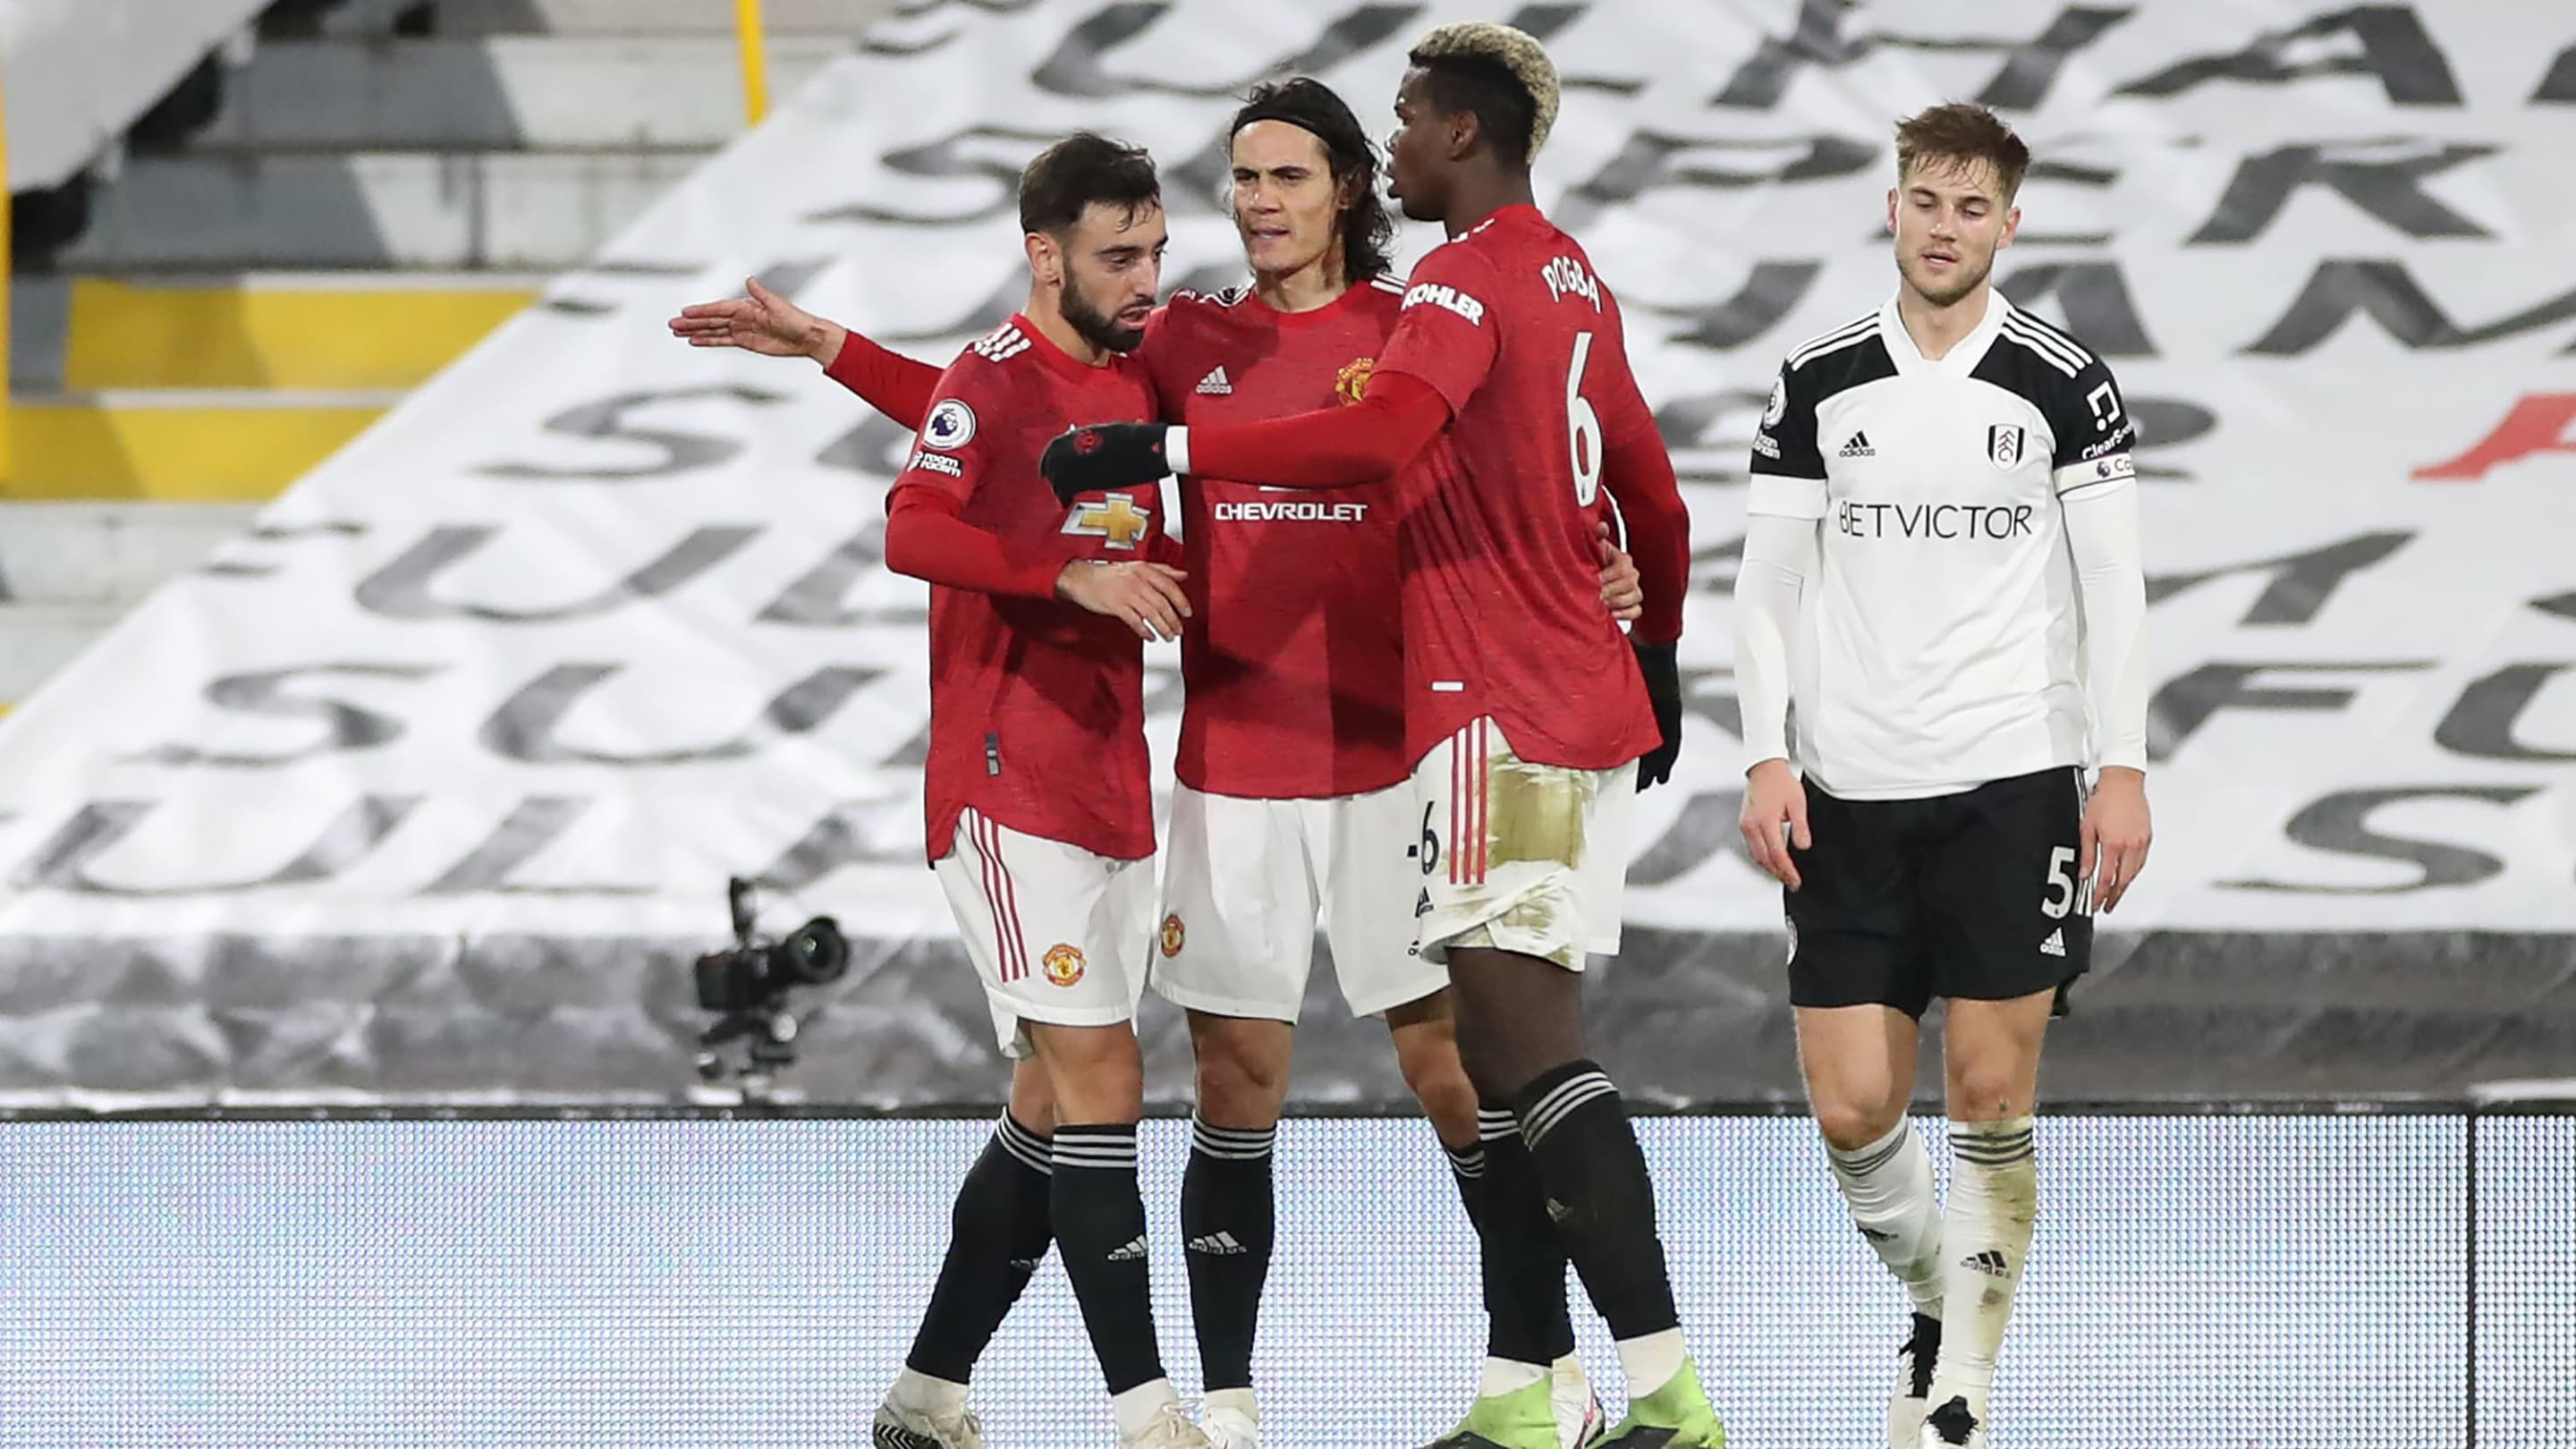 There is more to Manchester United than just Bruno Fernandes thumbnail